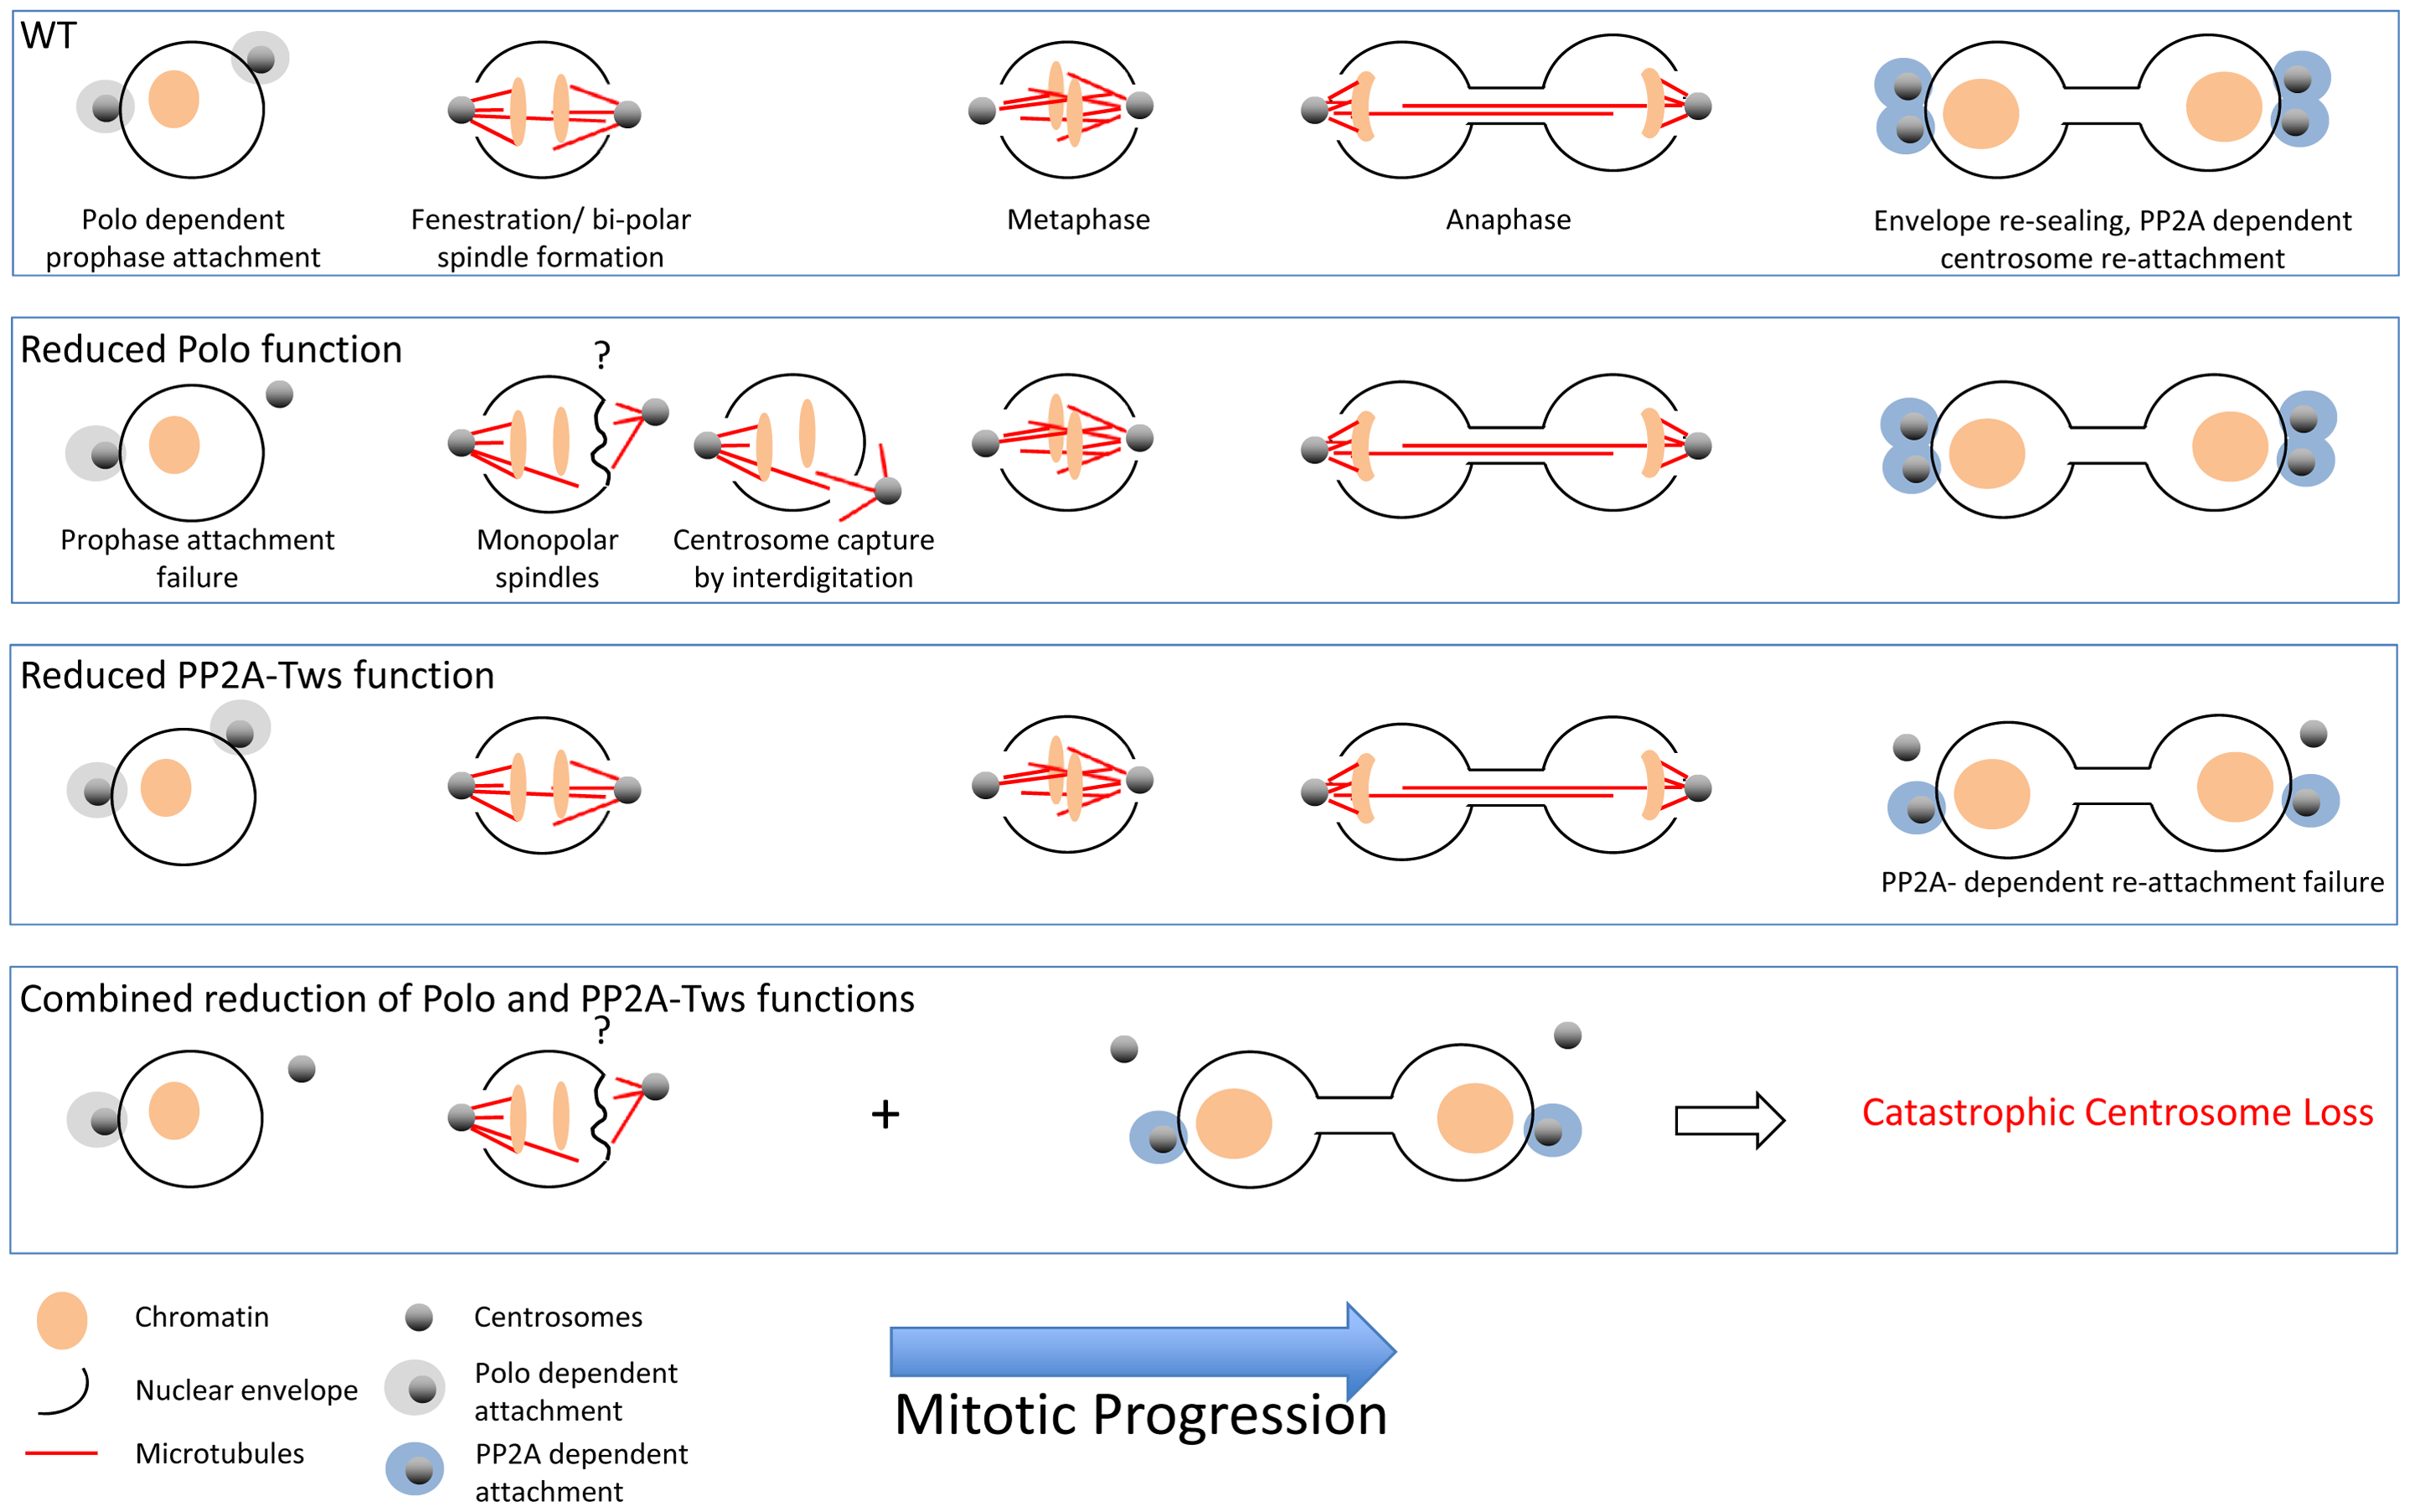 In wild-type syncitial embryos, the migration of centrosomes along the nuclear surface before their activation to nucleate microtubules co-incides with localised fenestration of the nuclear envelope beneath them.